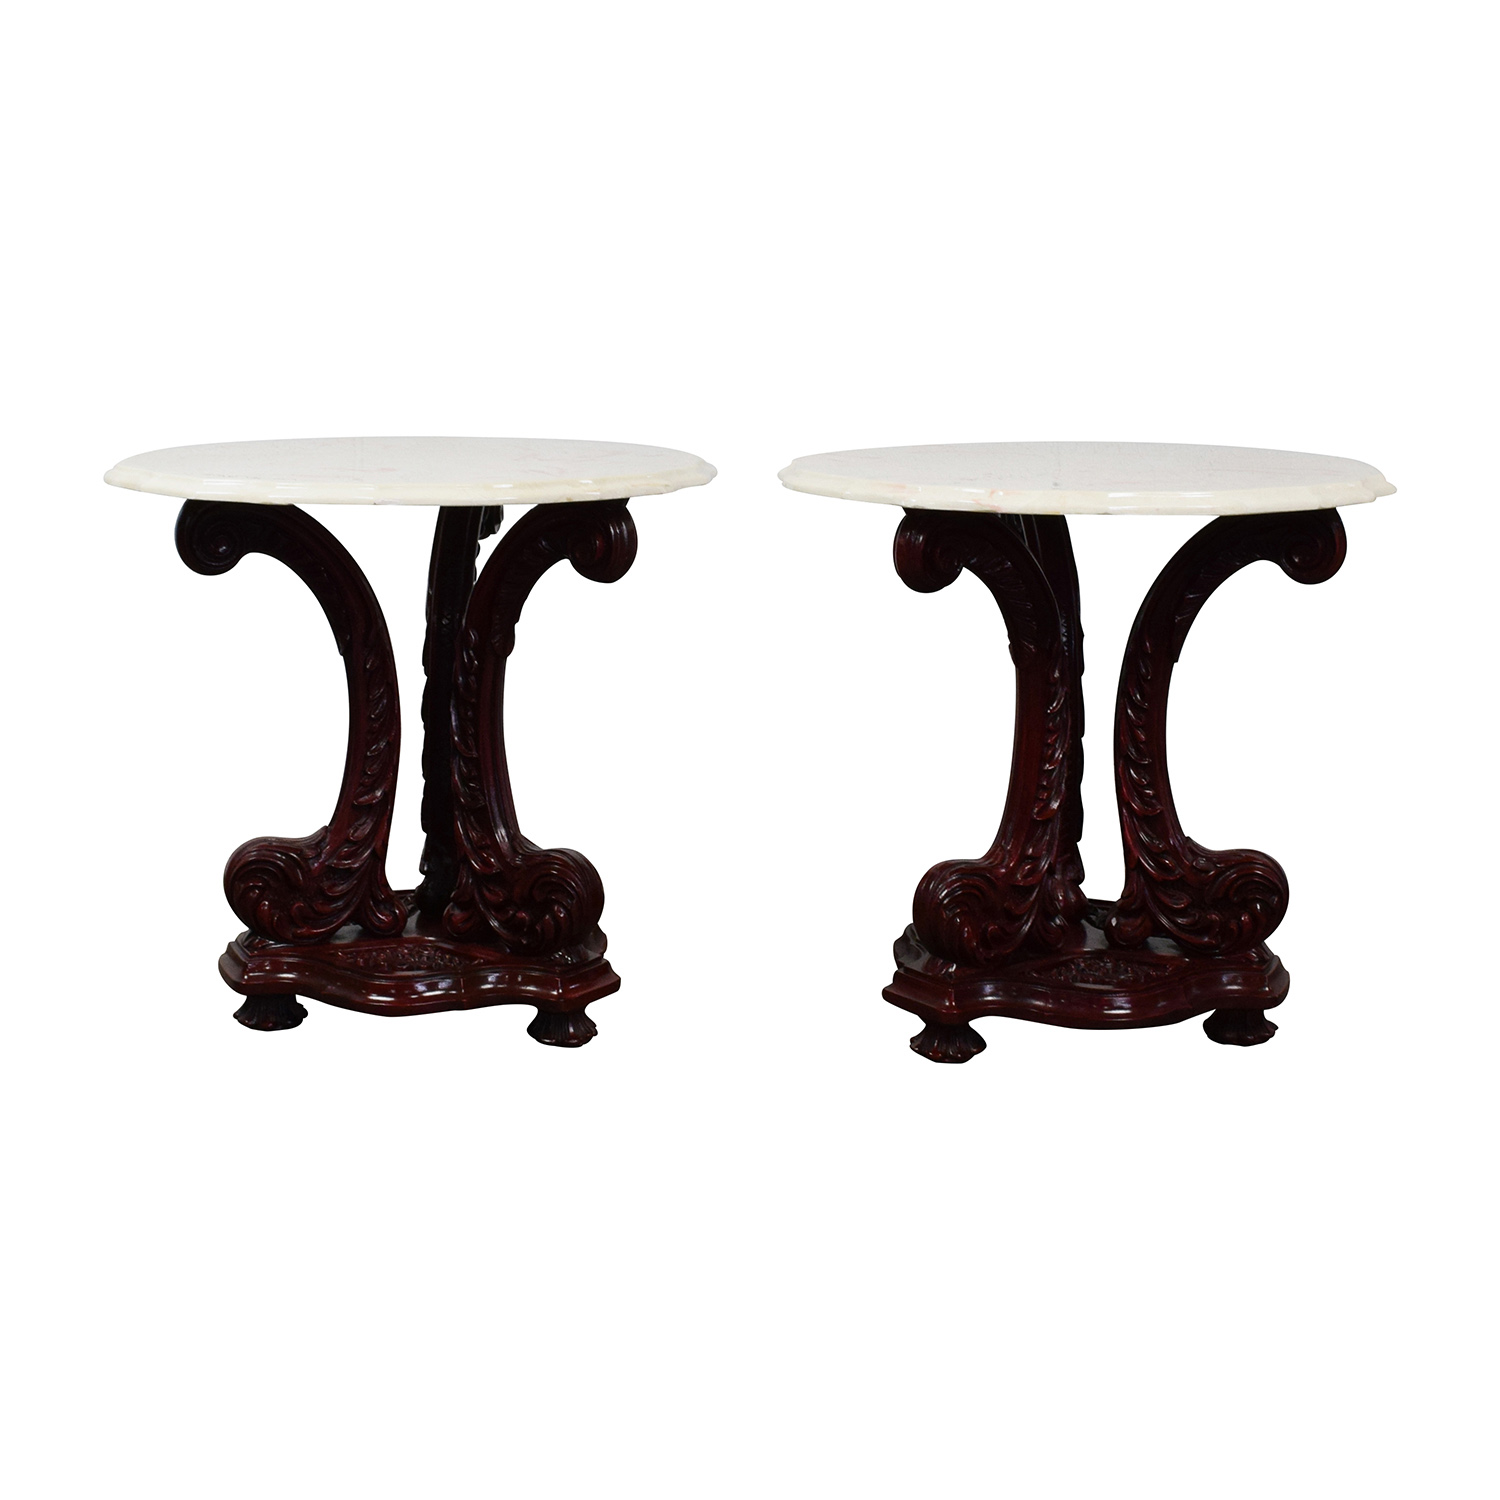 Marble Top End Tables with Burgundy Wood Base